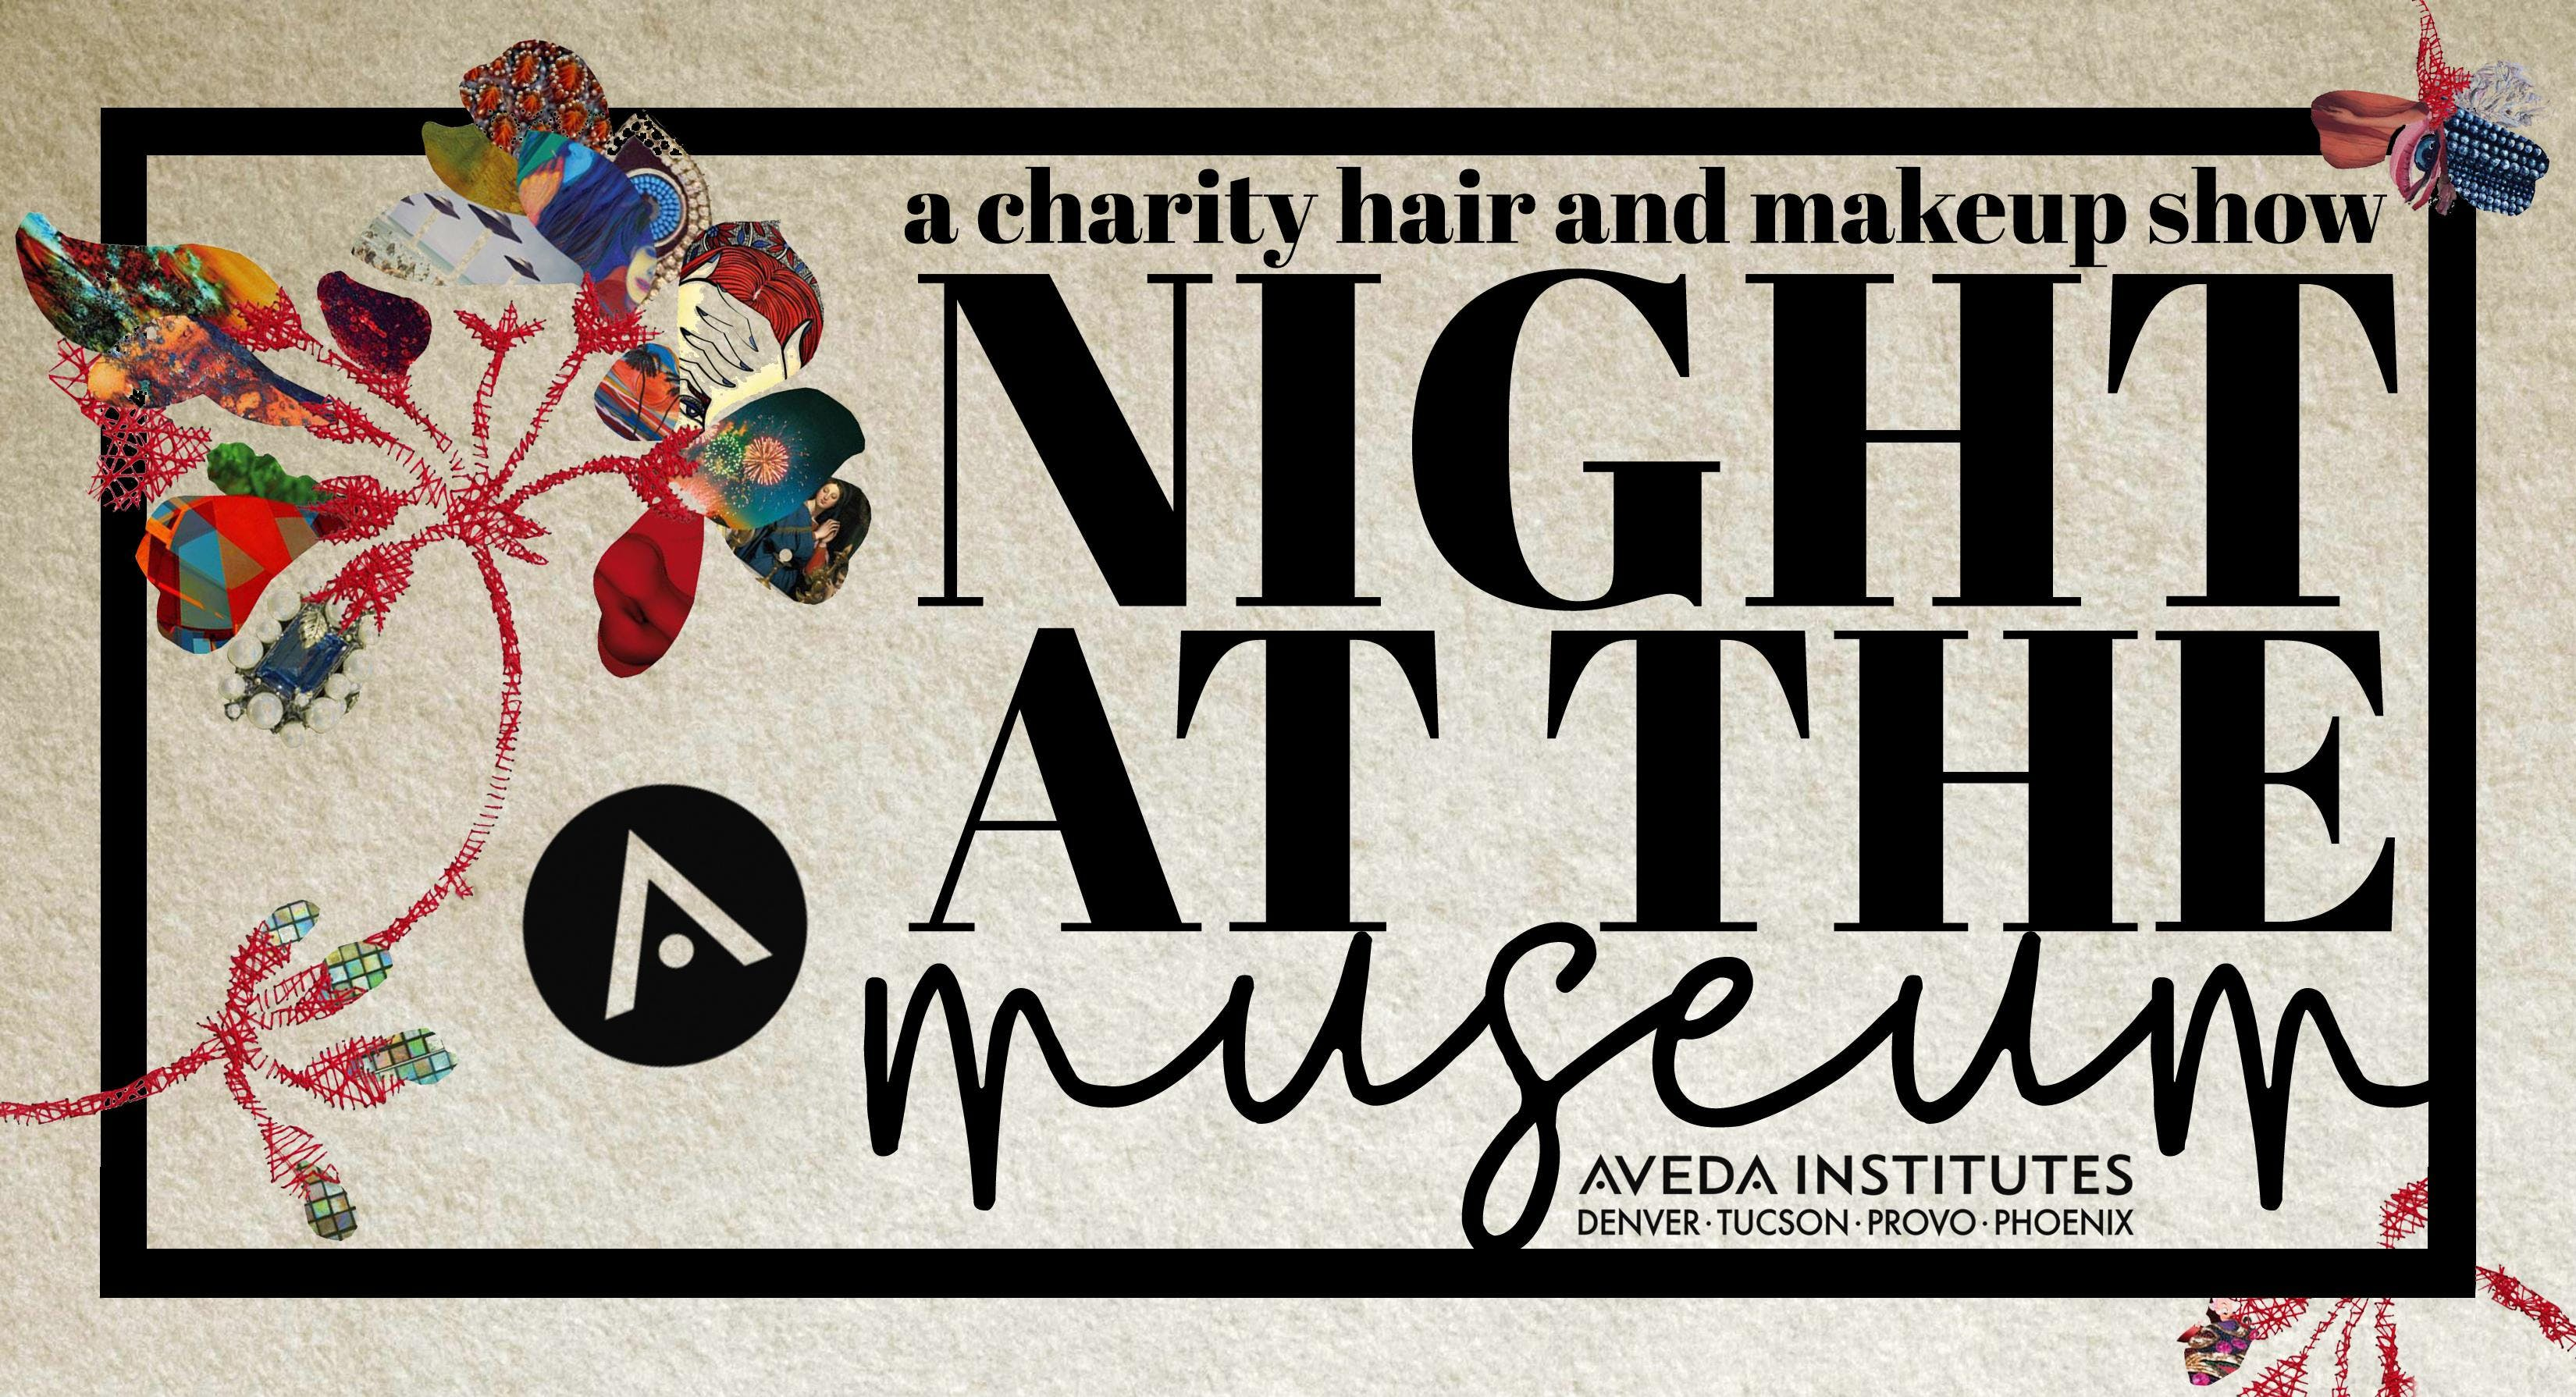 Night At The Museum: A Charity Hair & Makeup Show